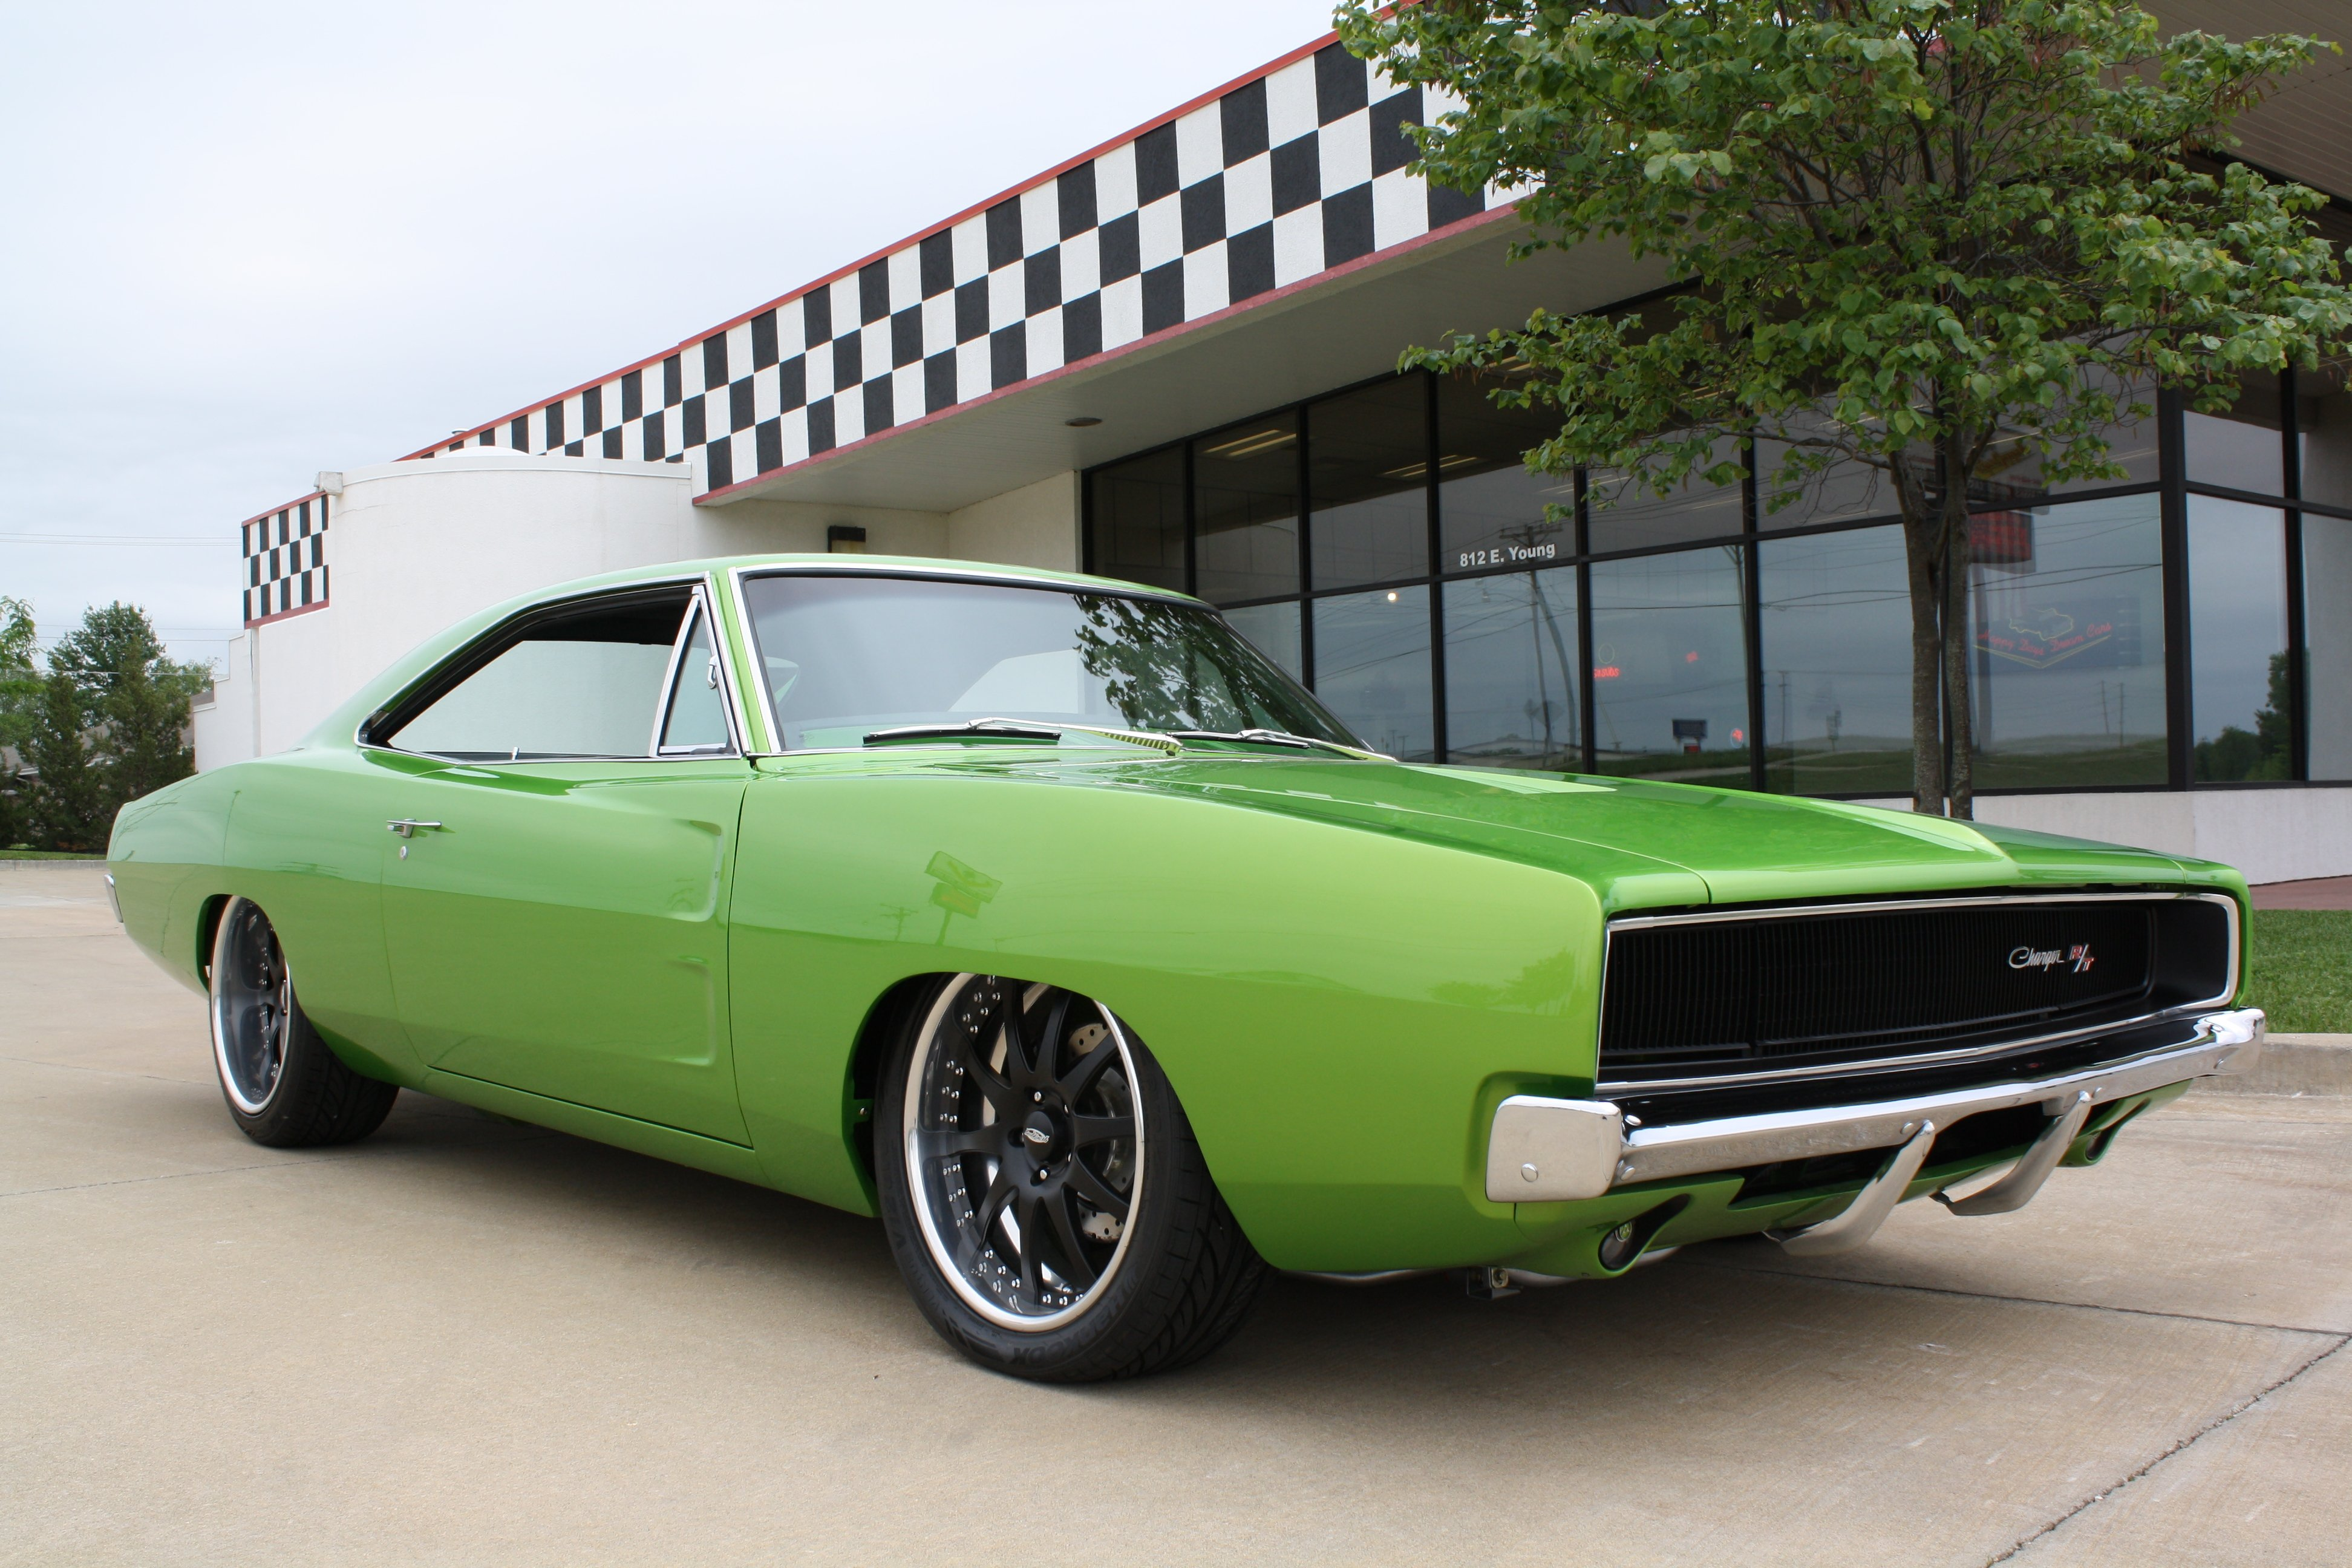 1968 Dodge Charger RT Streetrod Street Rod Hot Low Muscle